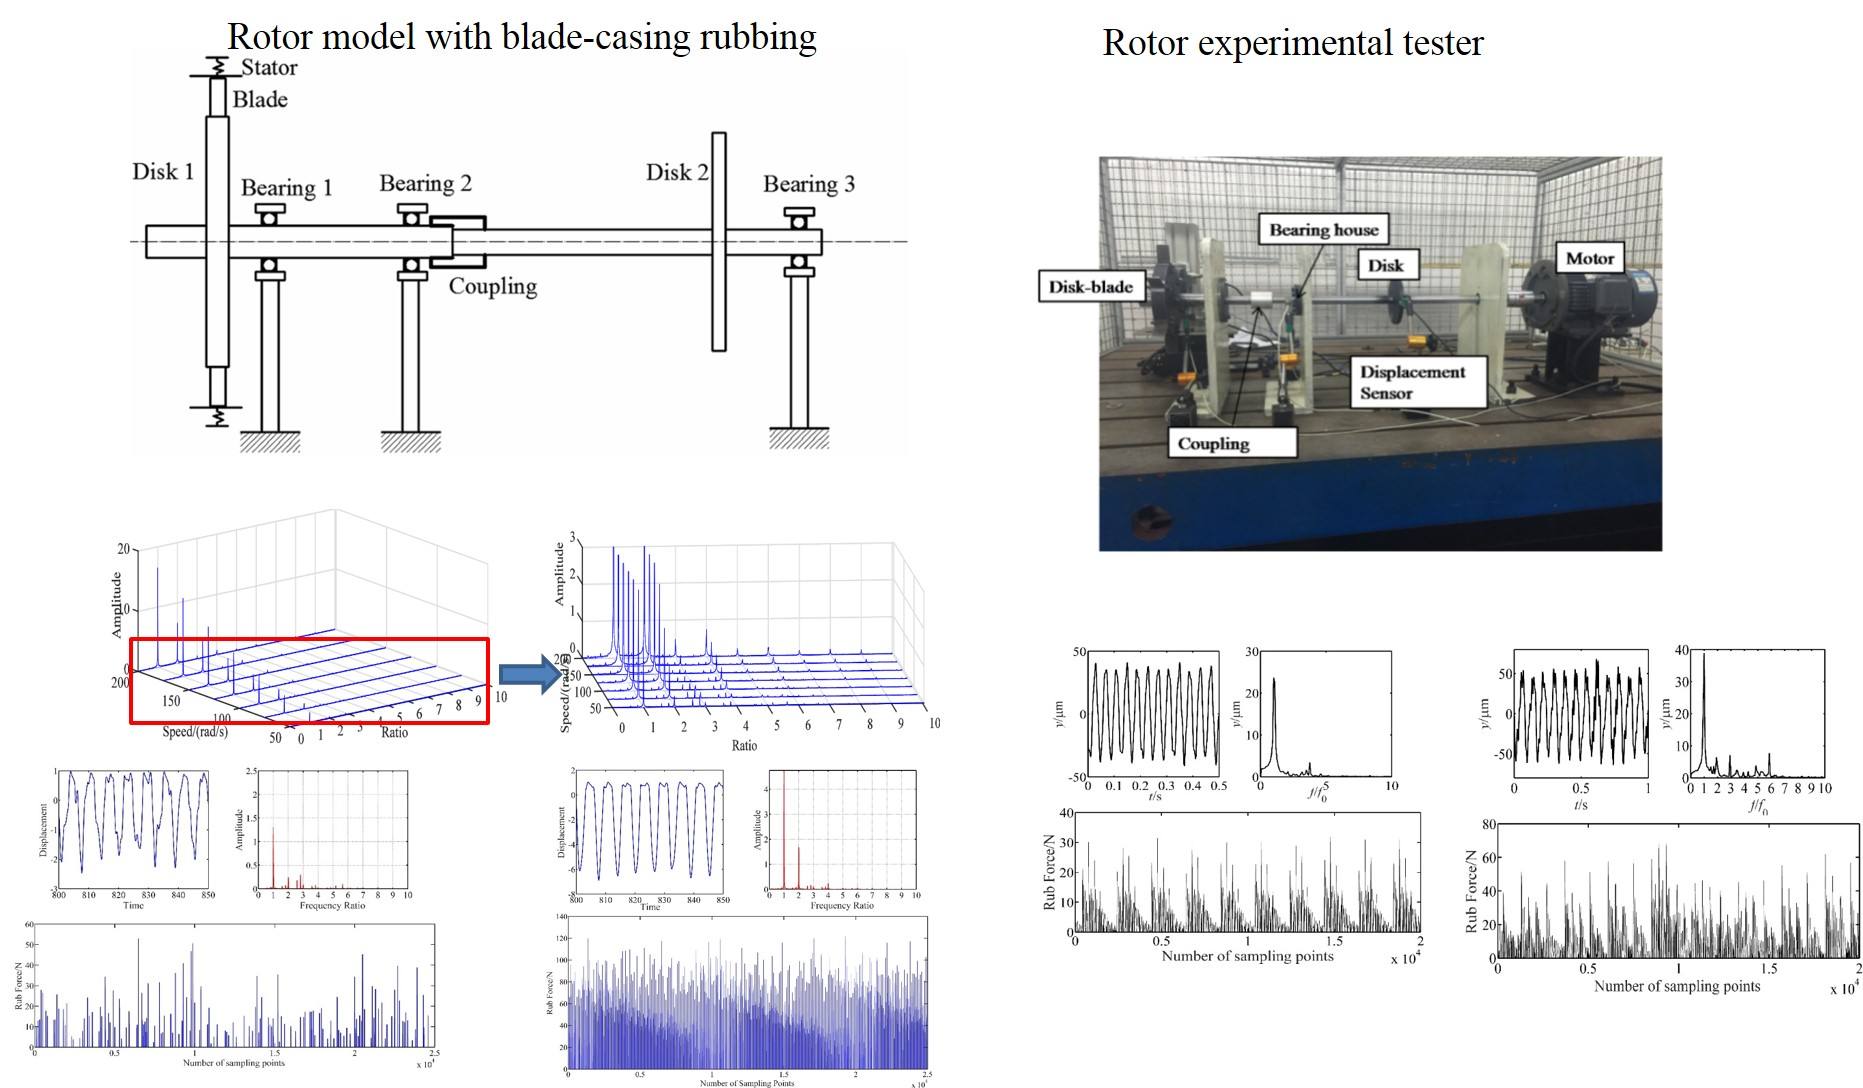 Vibration investigation of rotor system with unbalance and blade-casing rubbing coupling faults